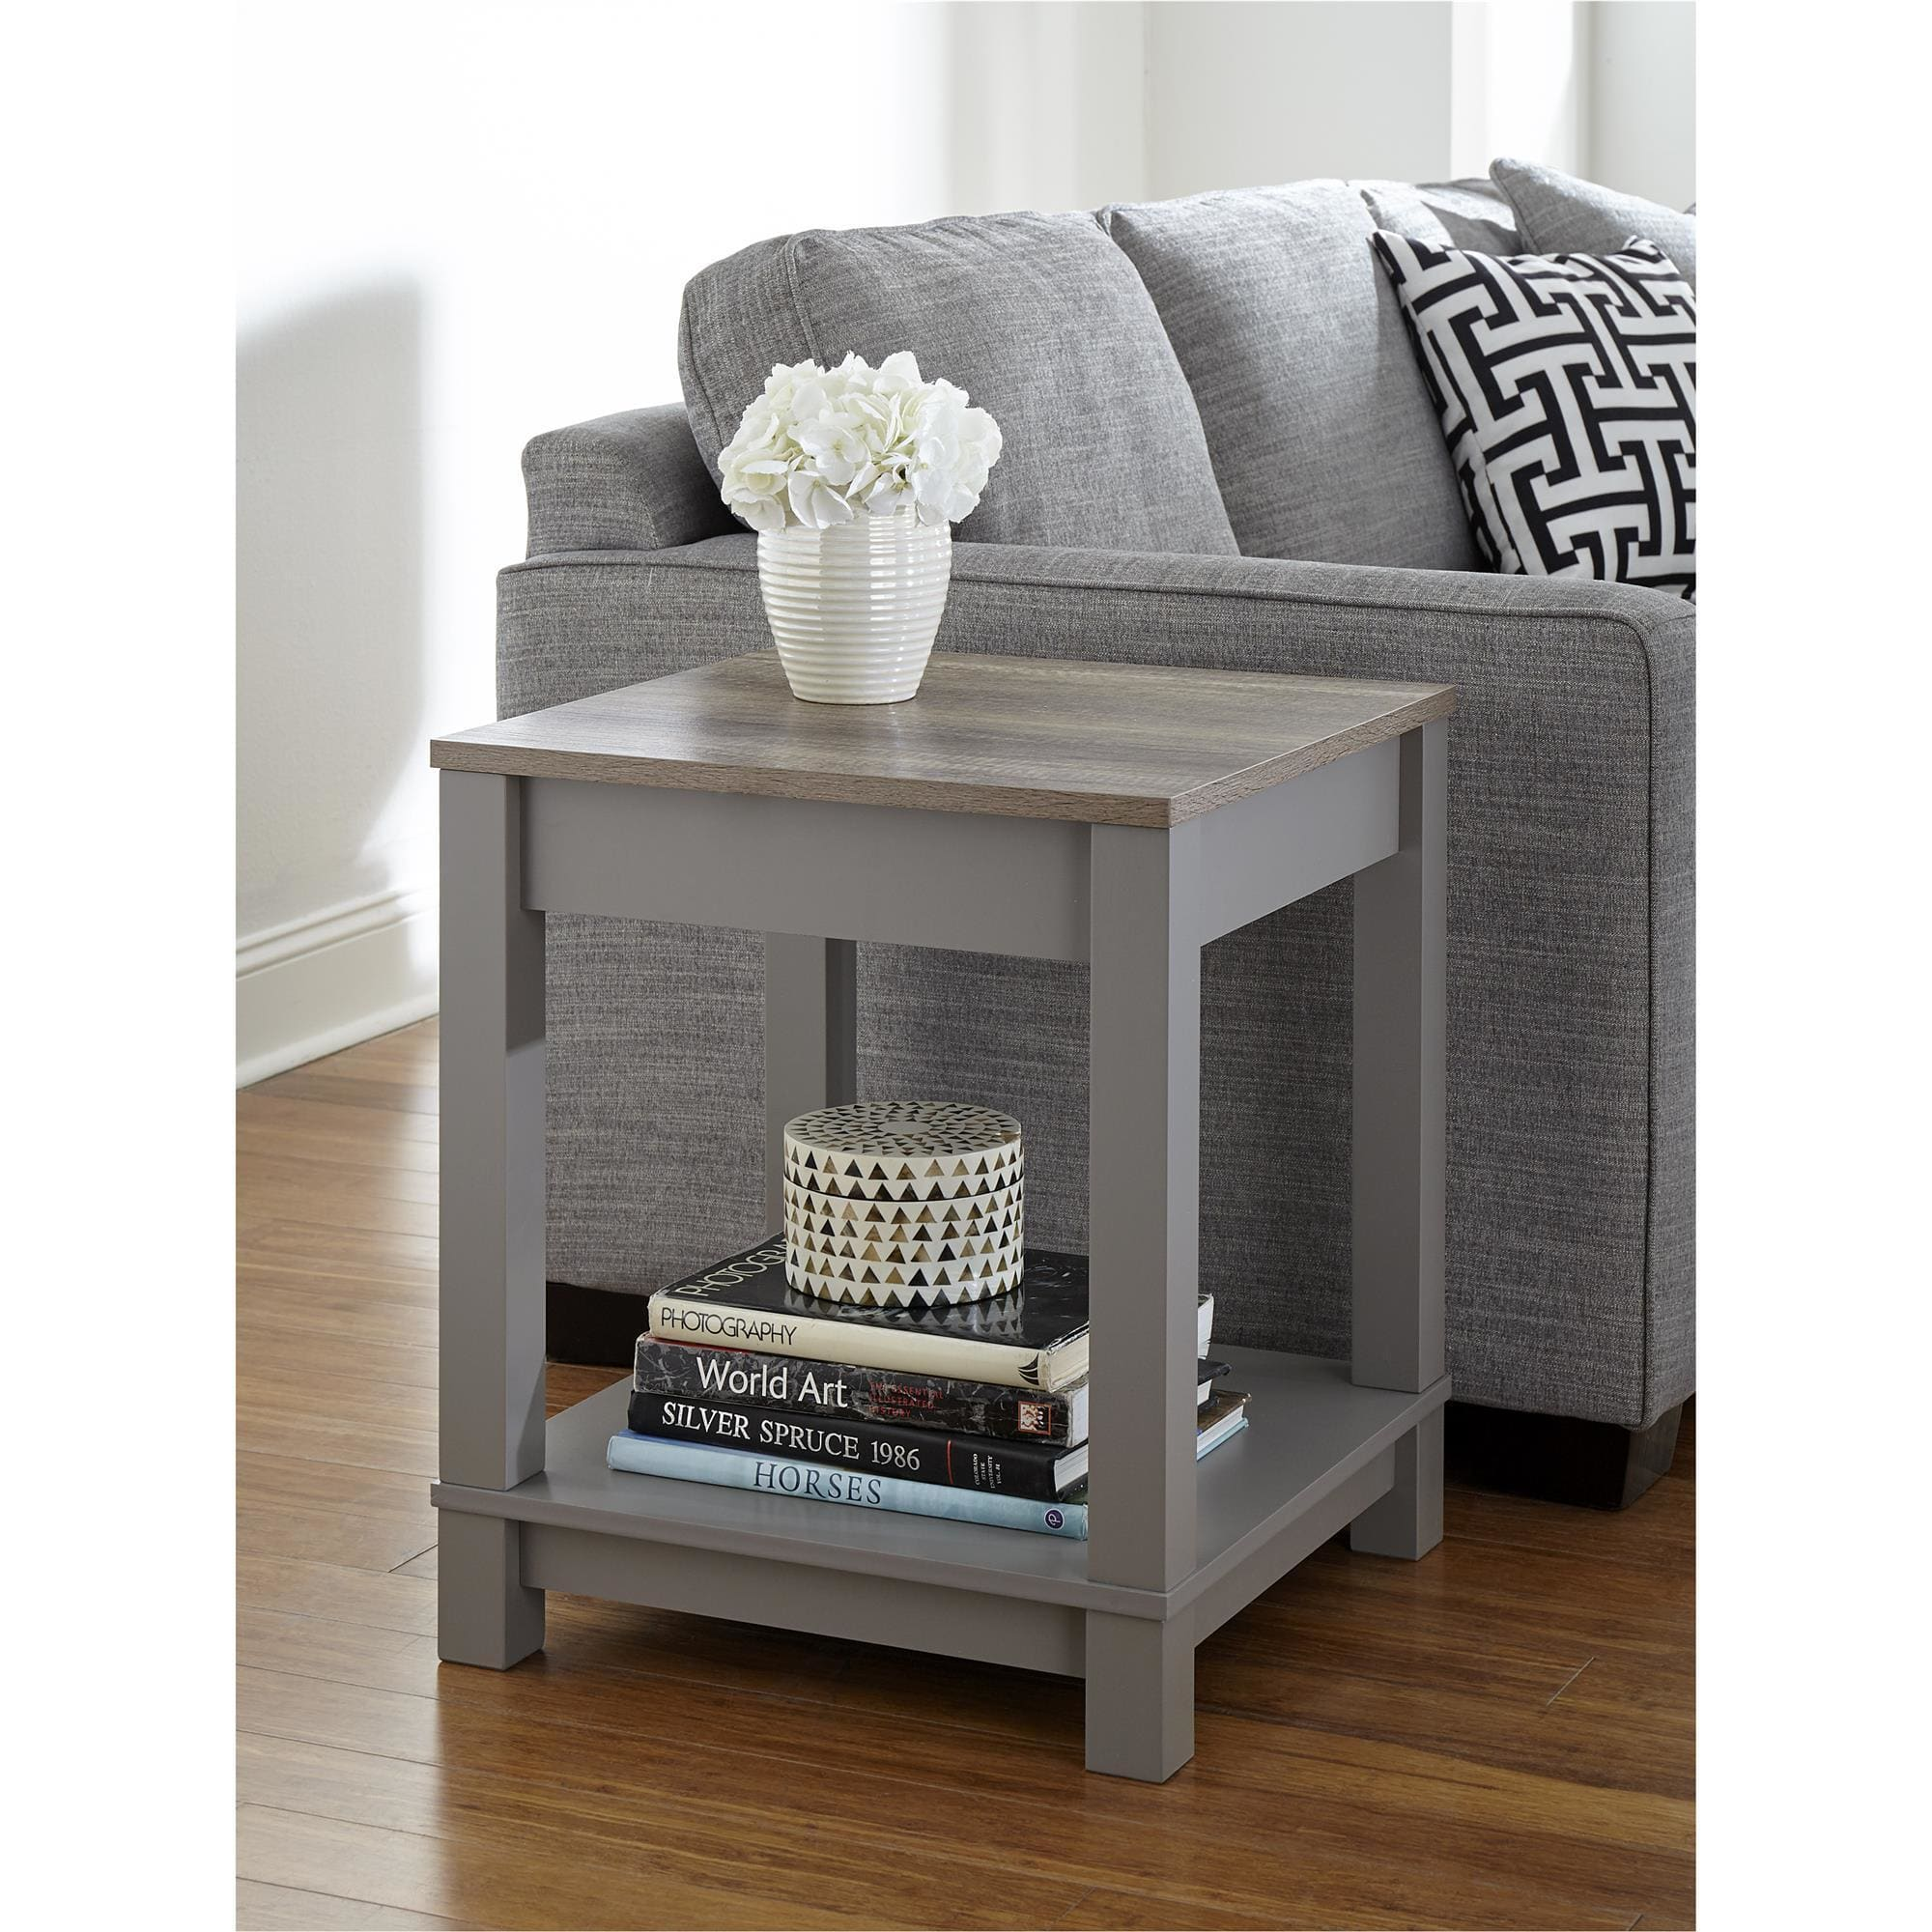 ameriwood home carver grey sonoma oak end table free storage accent black room essentials world market lamps high tiered metal pier one iron outside box furniture toronto cherry